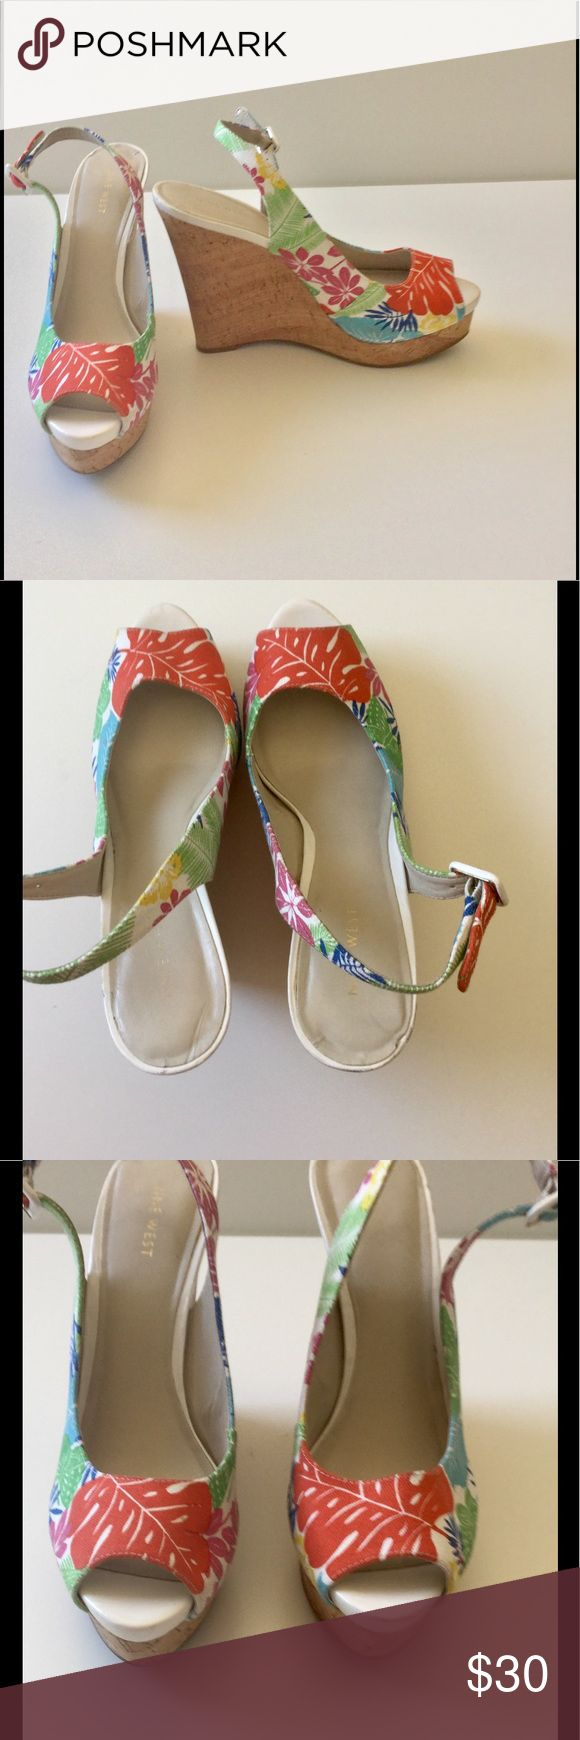 """🆕Listing Floral Platform Wedges 🎉HP🎉 Add summer flair with these Floral print canvas sling back wedges with cork sole. So cute with the FP crops, Bermudas & skirts and dresses! Adjustable buckle strap. 5.5"""" heel on a 1"""" platform. Cushioned footbed. Good pre-loved condition. Heel is in good condition. Some wear on cork shown with HD photo not very noticeable on 🎀Bundle discount  ⭐️5 star rated Suggested User 🚭Smoke free home 🚫No trades please  😍Please ask"""